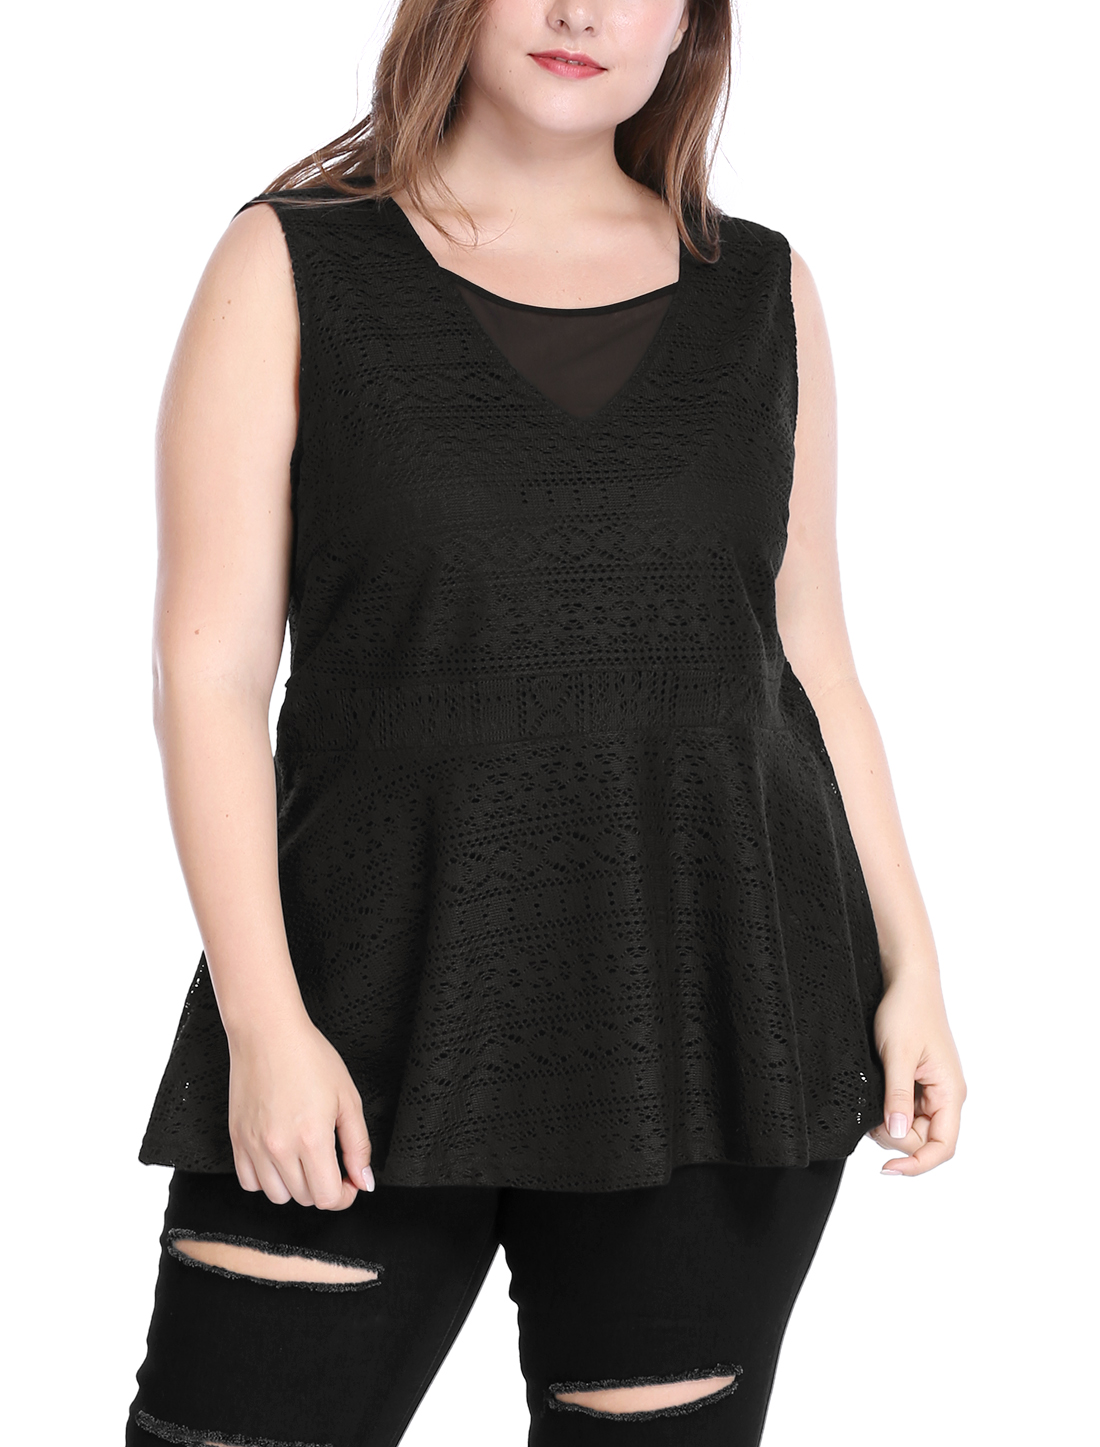 Women Plus Size Sheer Mesh V Neck Sleeveless Lace Peplum Top Black 2X